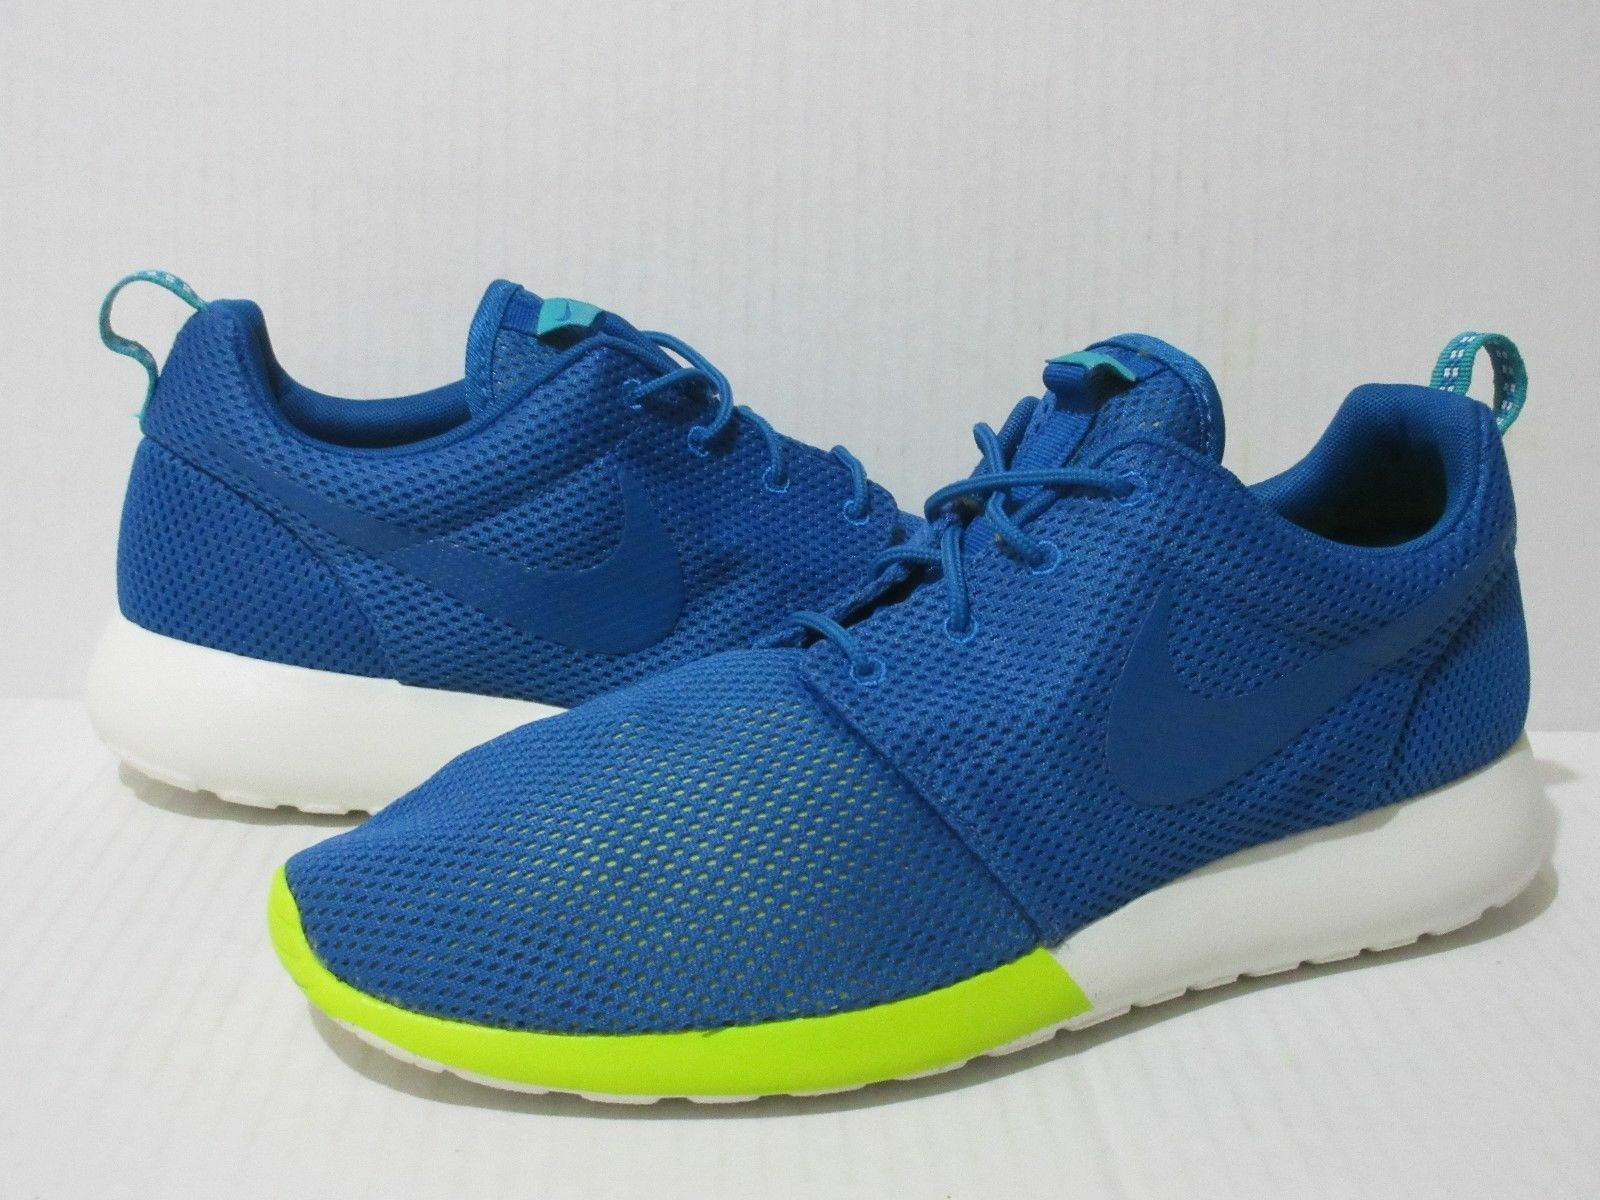 official photos f053a 890b6 NWOB Nike Rosherun Mens Sneakers 511881 511881 511881 400 Military  Blue Tribe Green Mens 10